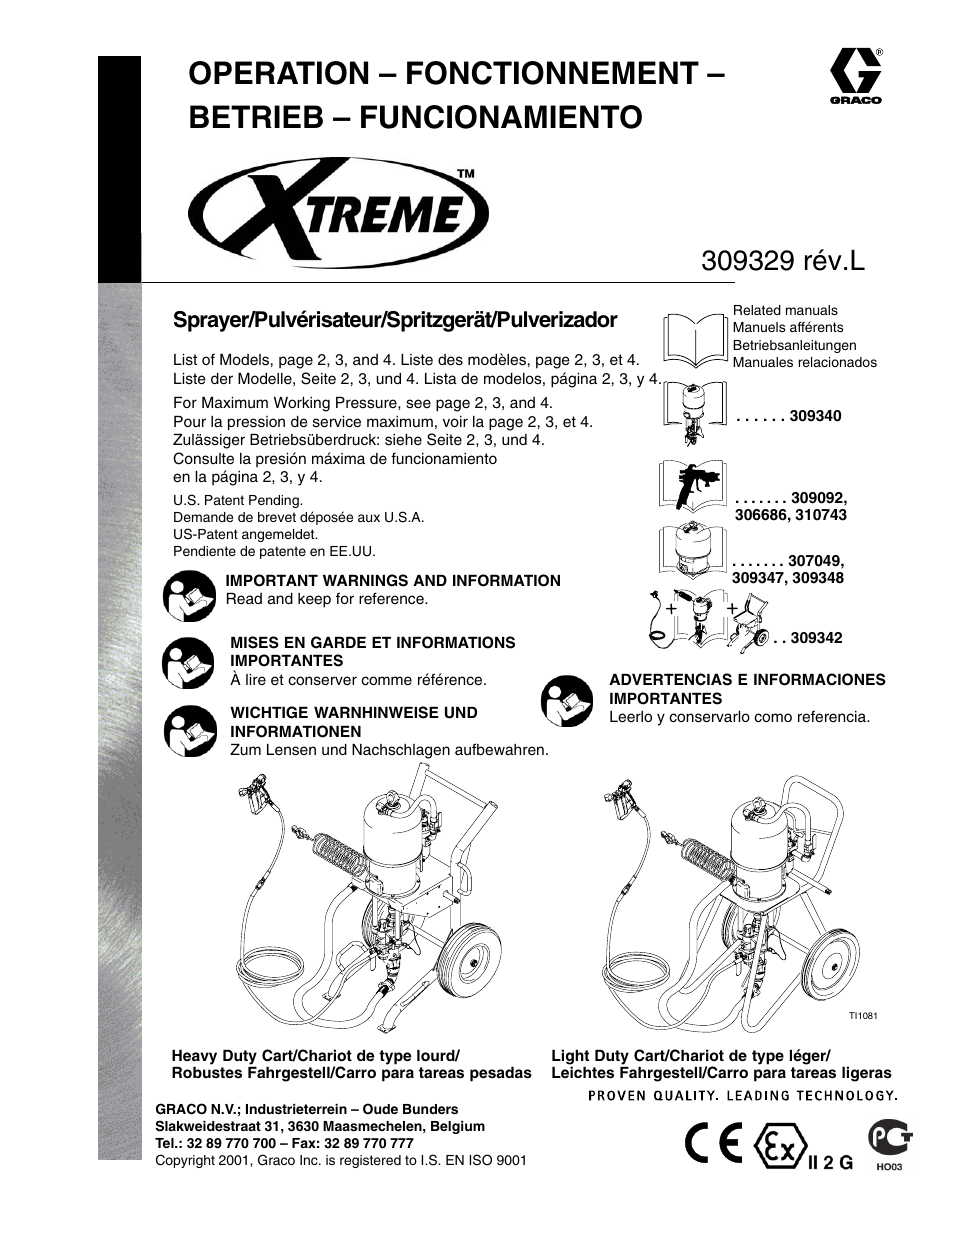 graco inc xtreme 309329 user manual 26 pages original mode rh manualsdir com Graco Minneapolis Graco Airless Sprayer